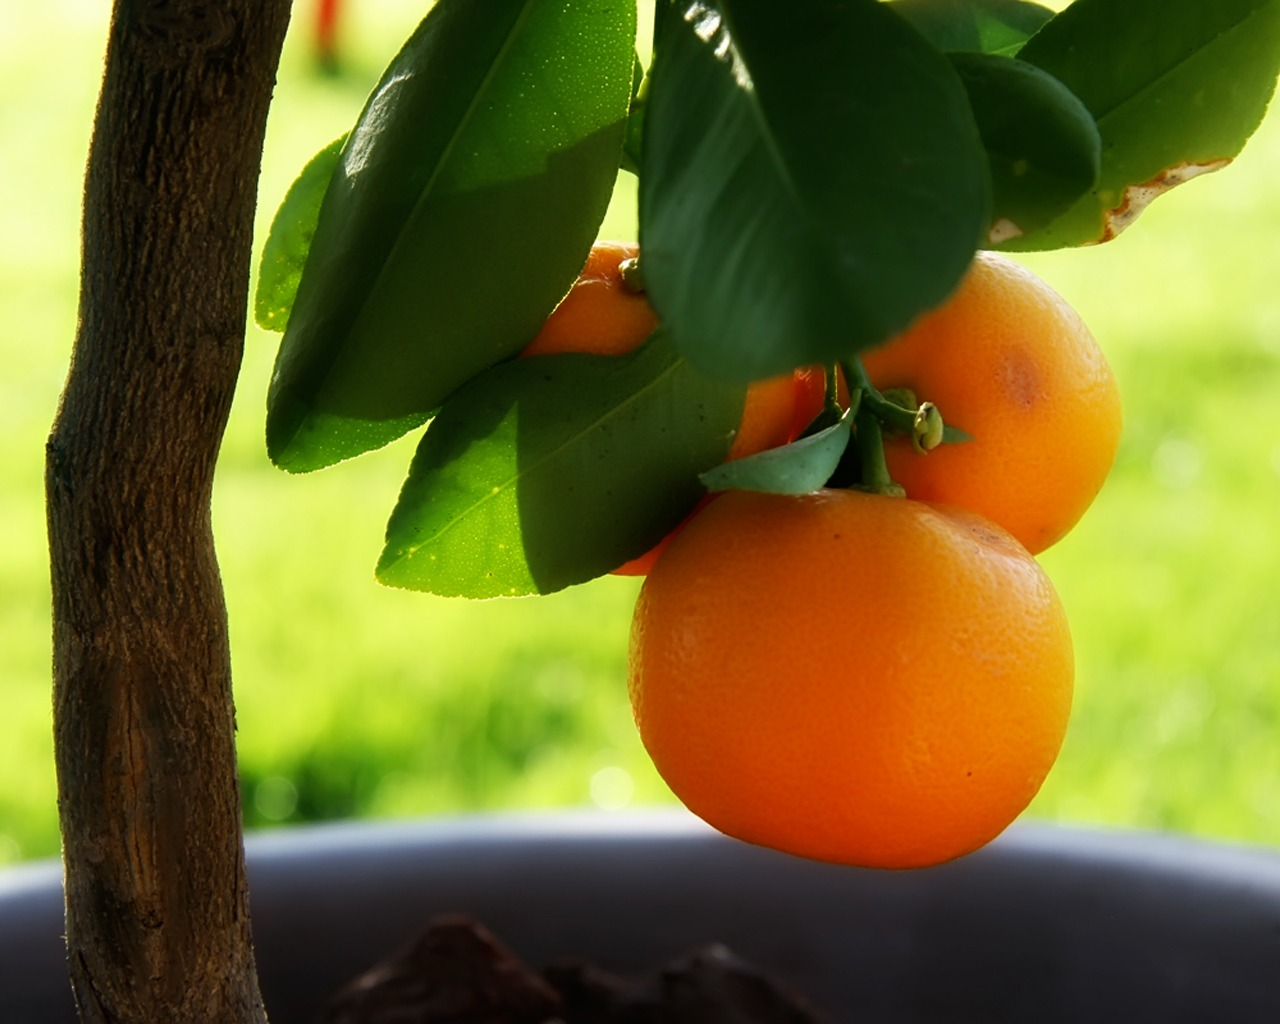 Little Orange Tree Wallpaper Plants Nature Wallpapers In Jpg Format For Free Download